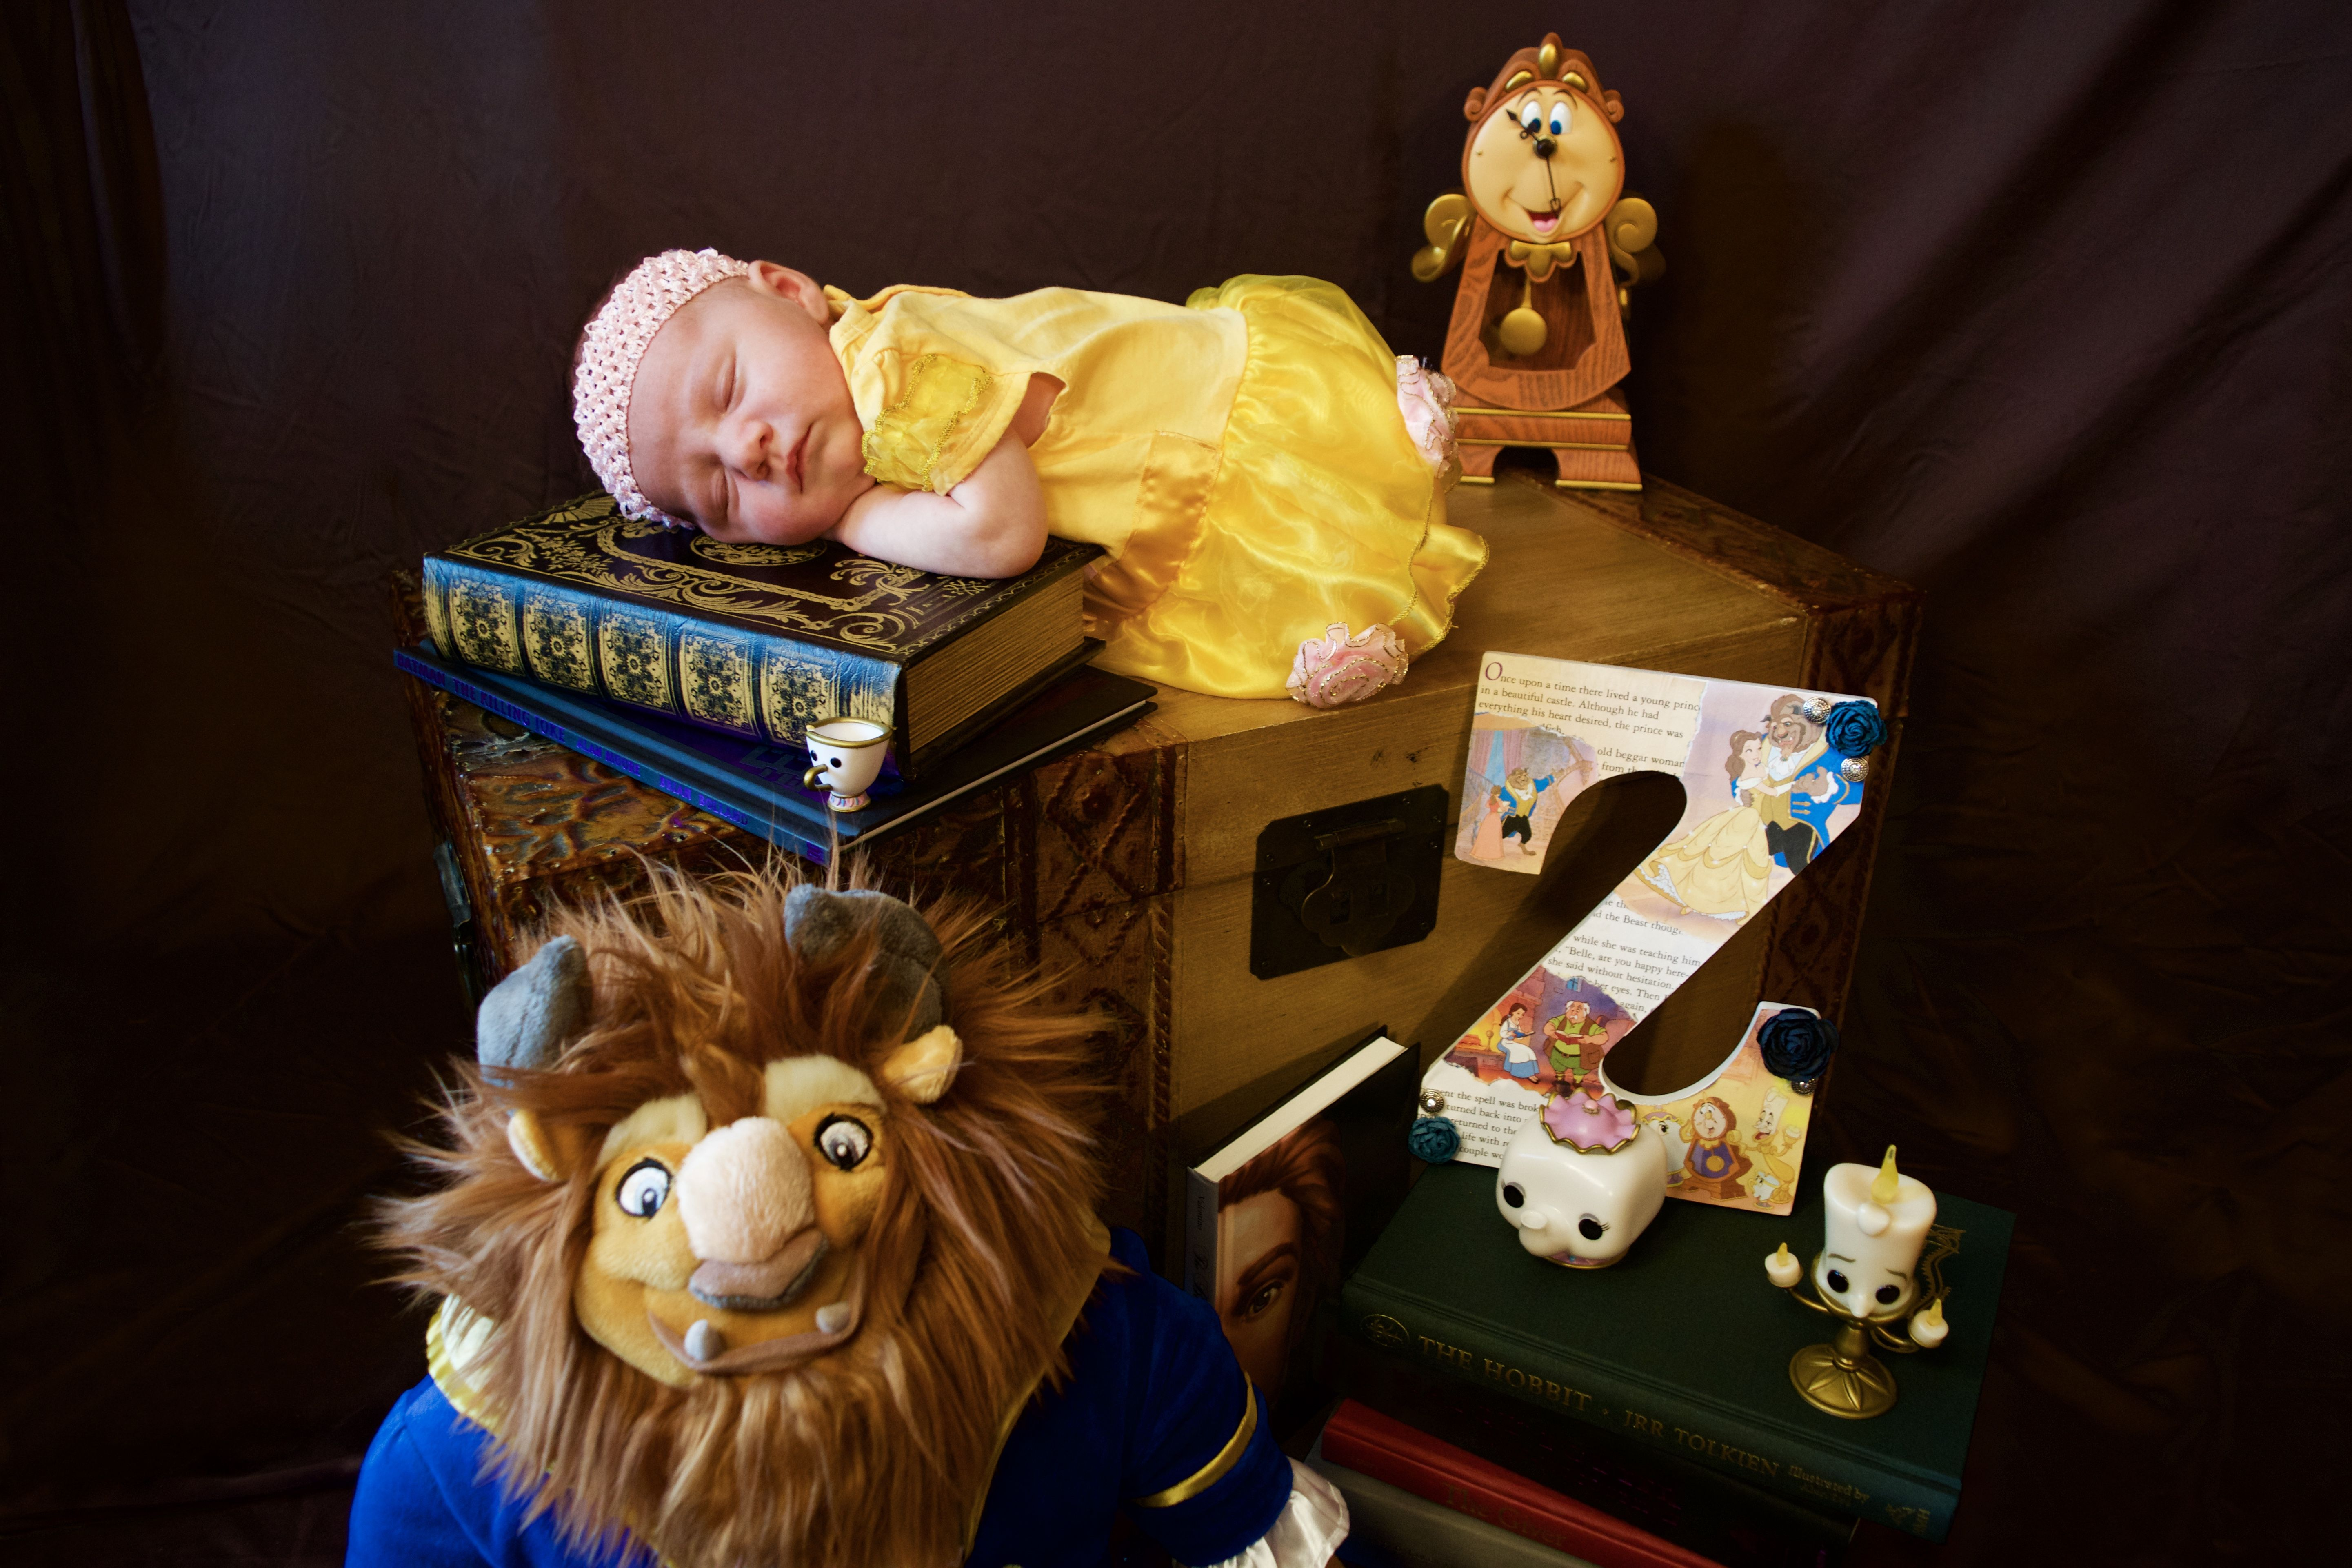 Beauty and the beast belles bedroom - Beauty And The Beast Newborn Photo Of Our Baby Zosia Disney Princess Belle